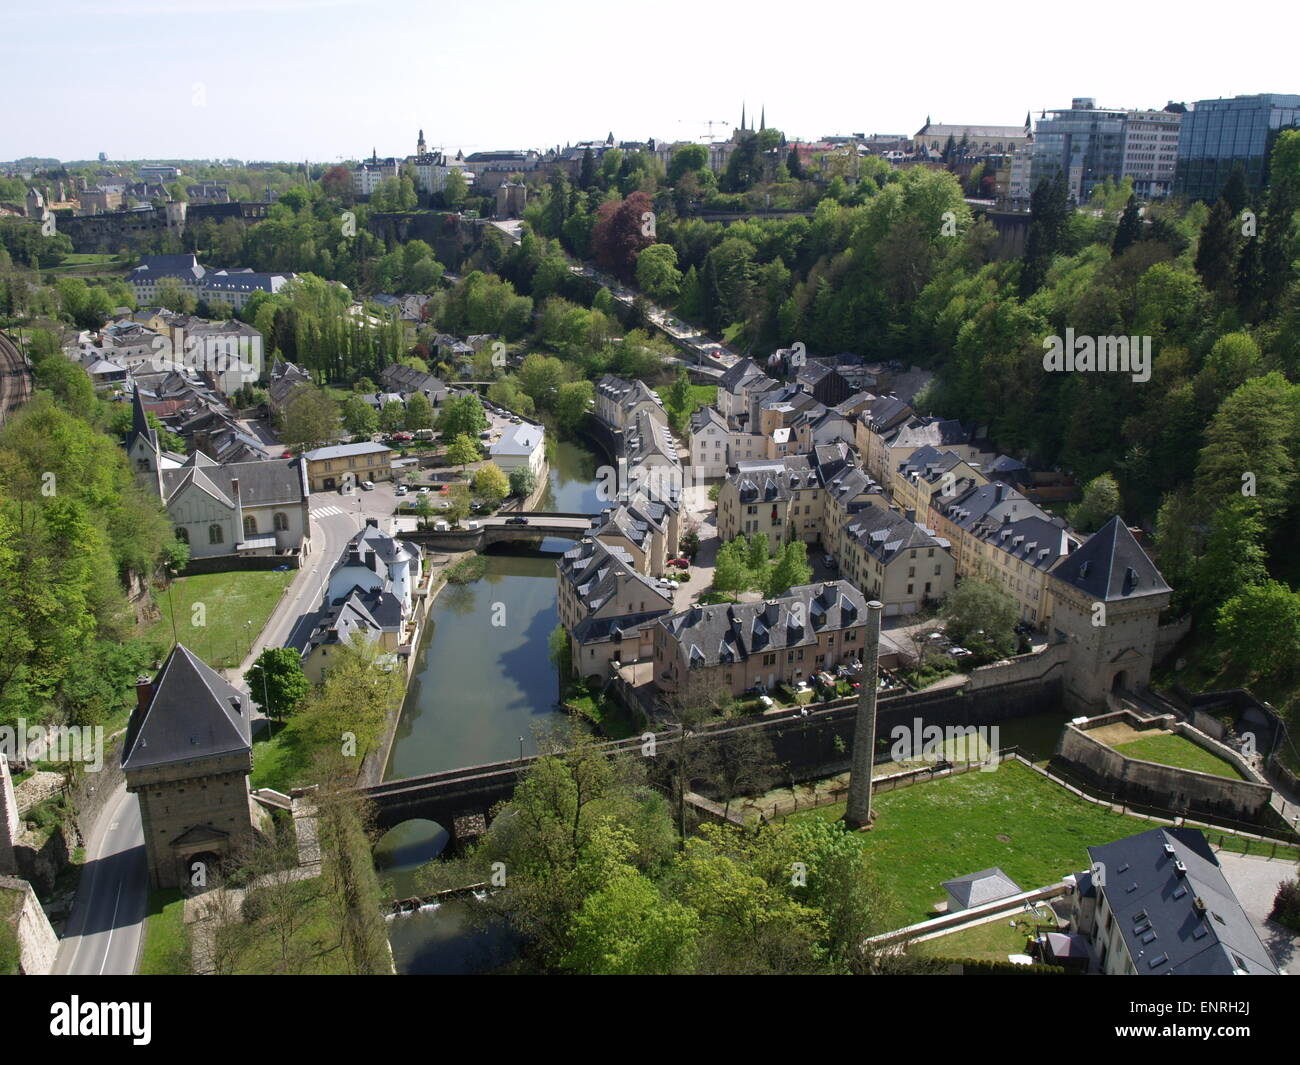 View of Luxembourg city. - Stock Image